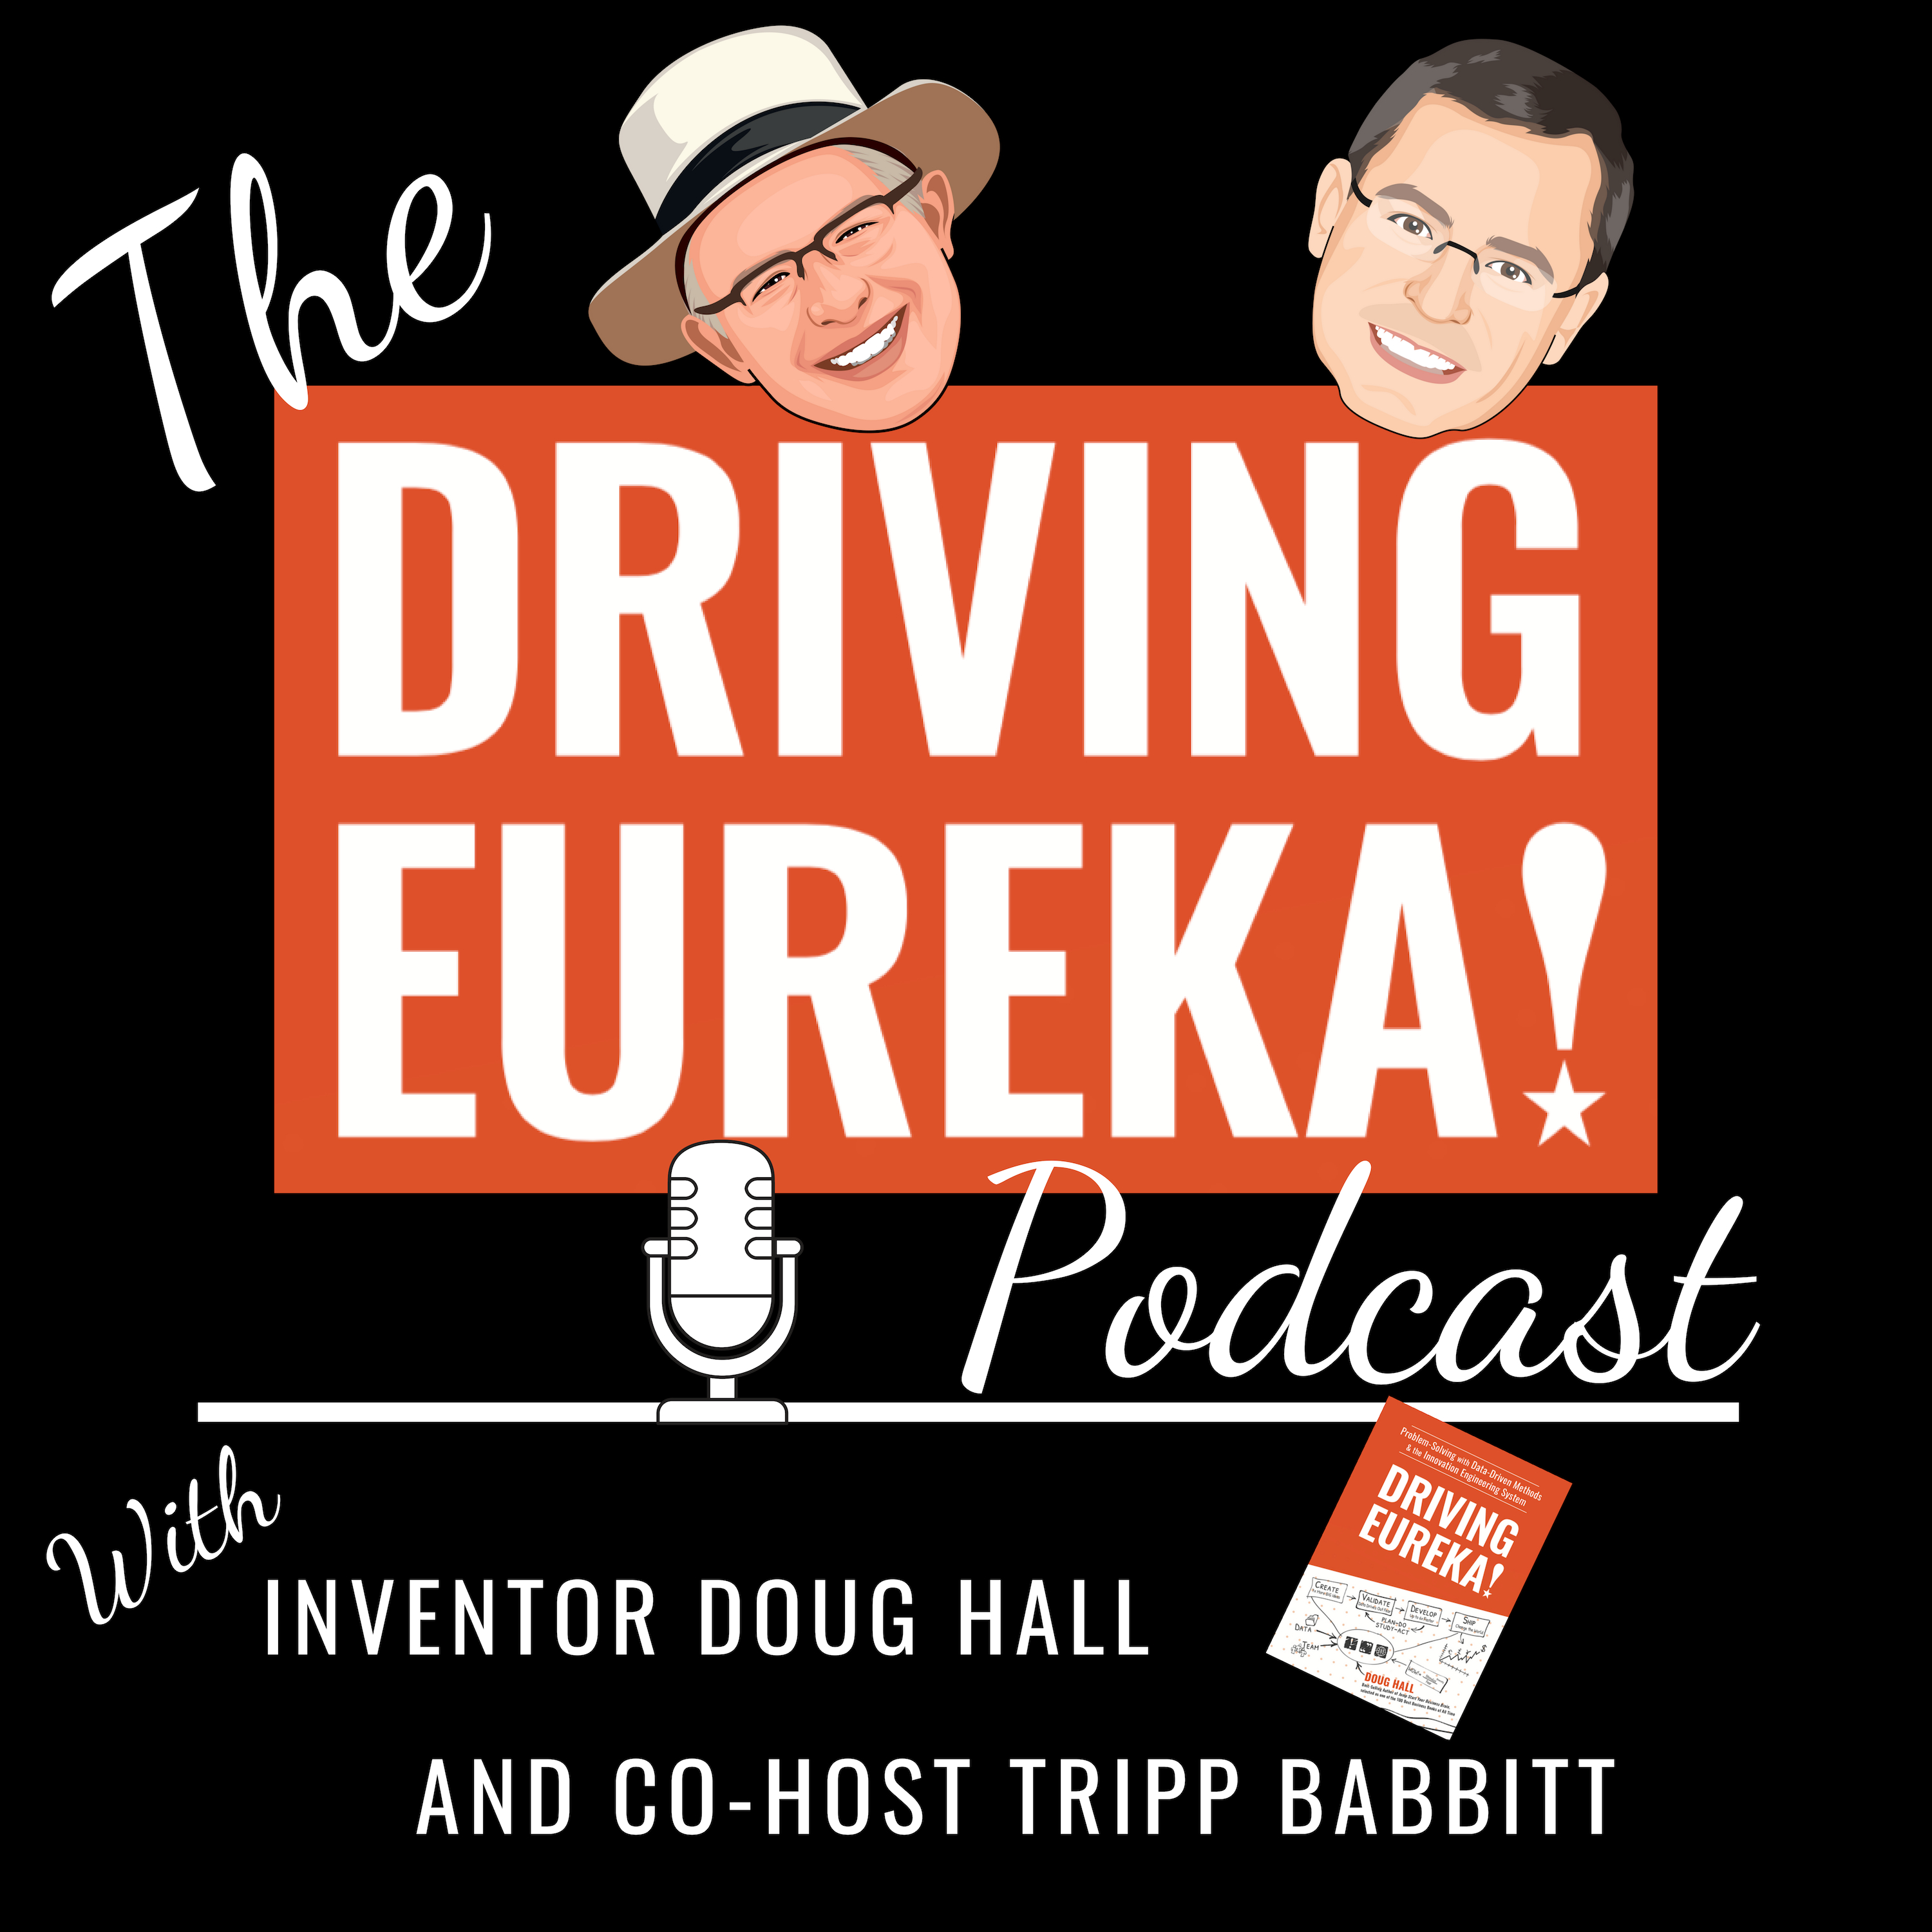 The Driving Eureka! Podcast - Find, Filter and Fast Track Big Ideas to Innovate show art